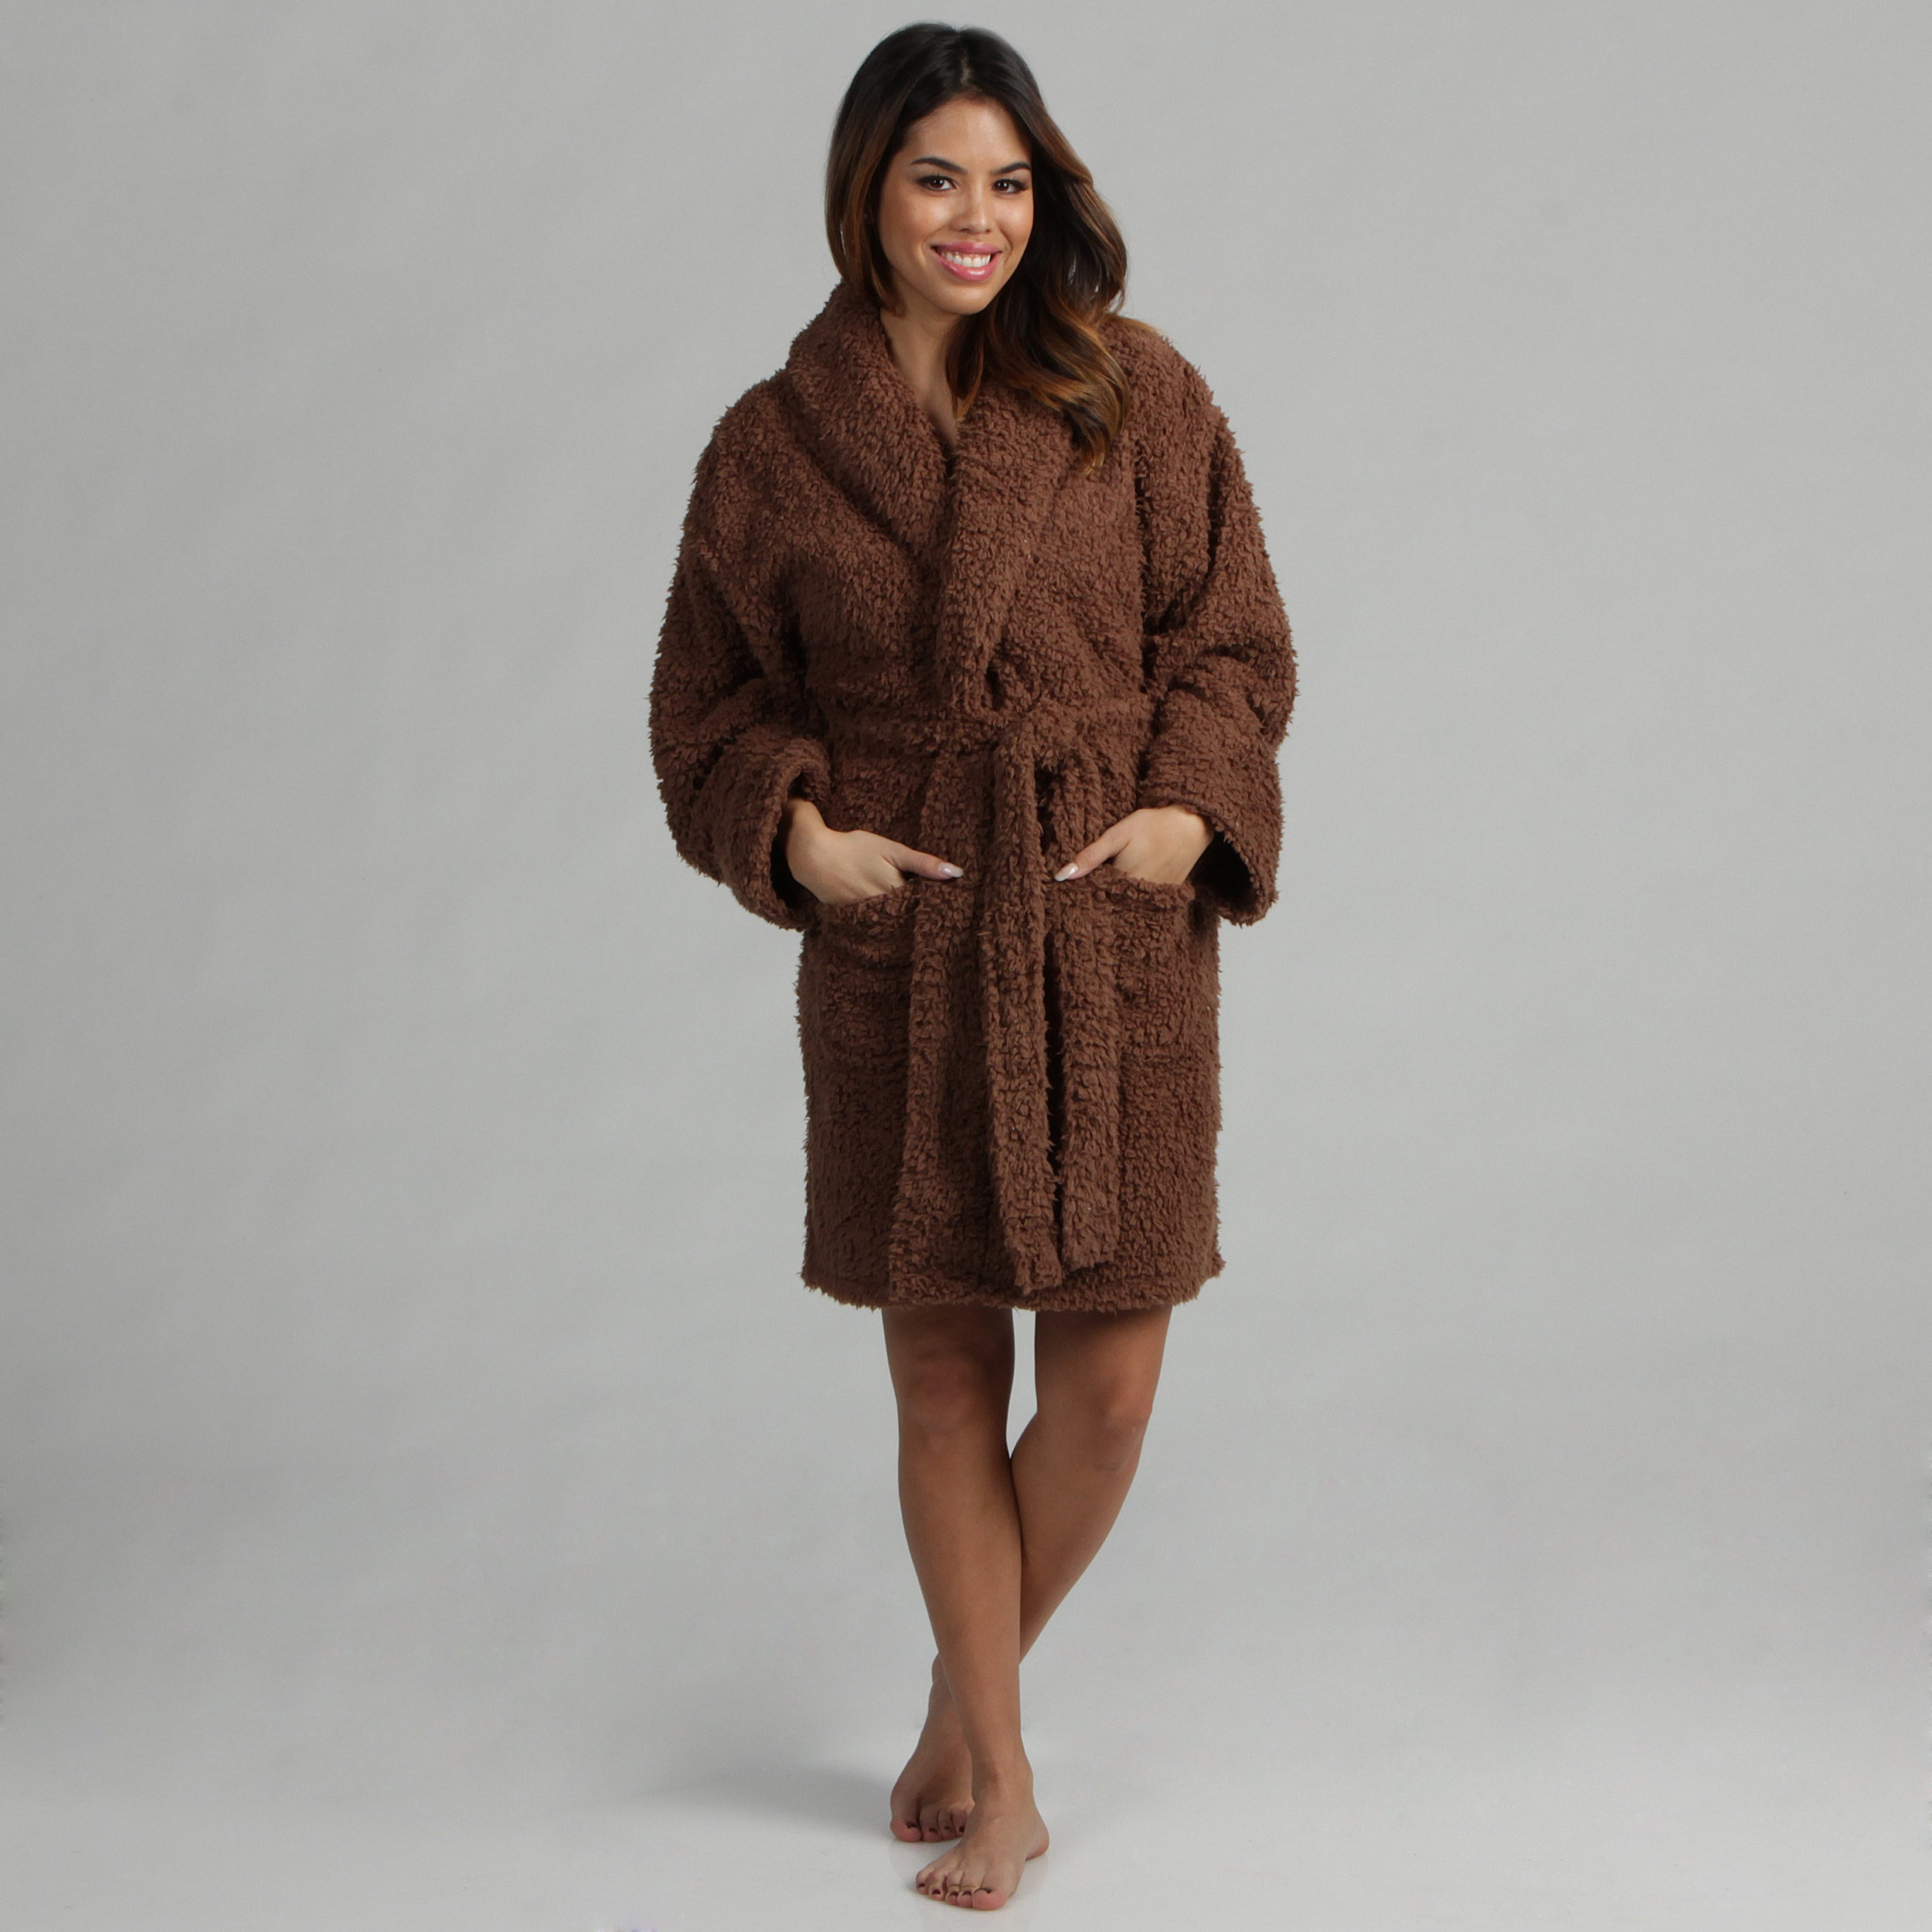 Aegean Apparel Women's Brown Sherpa Textured Plush Robe at Sears.com